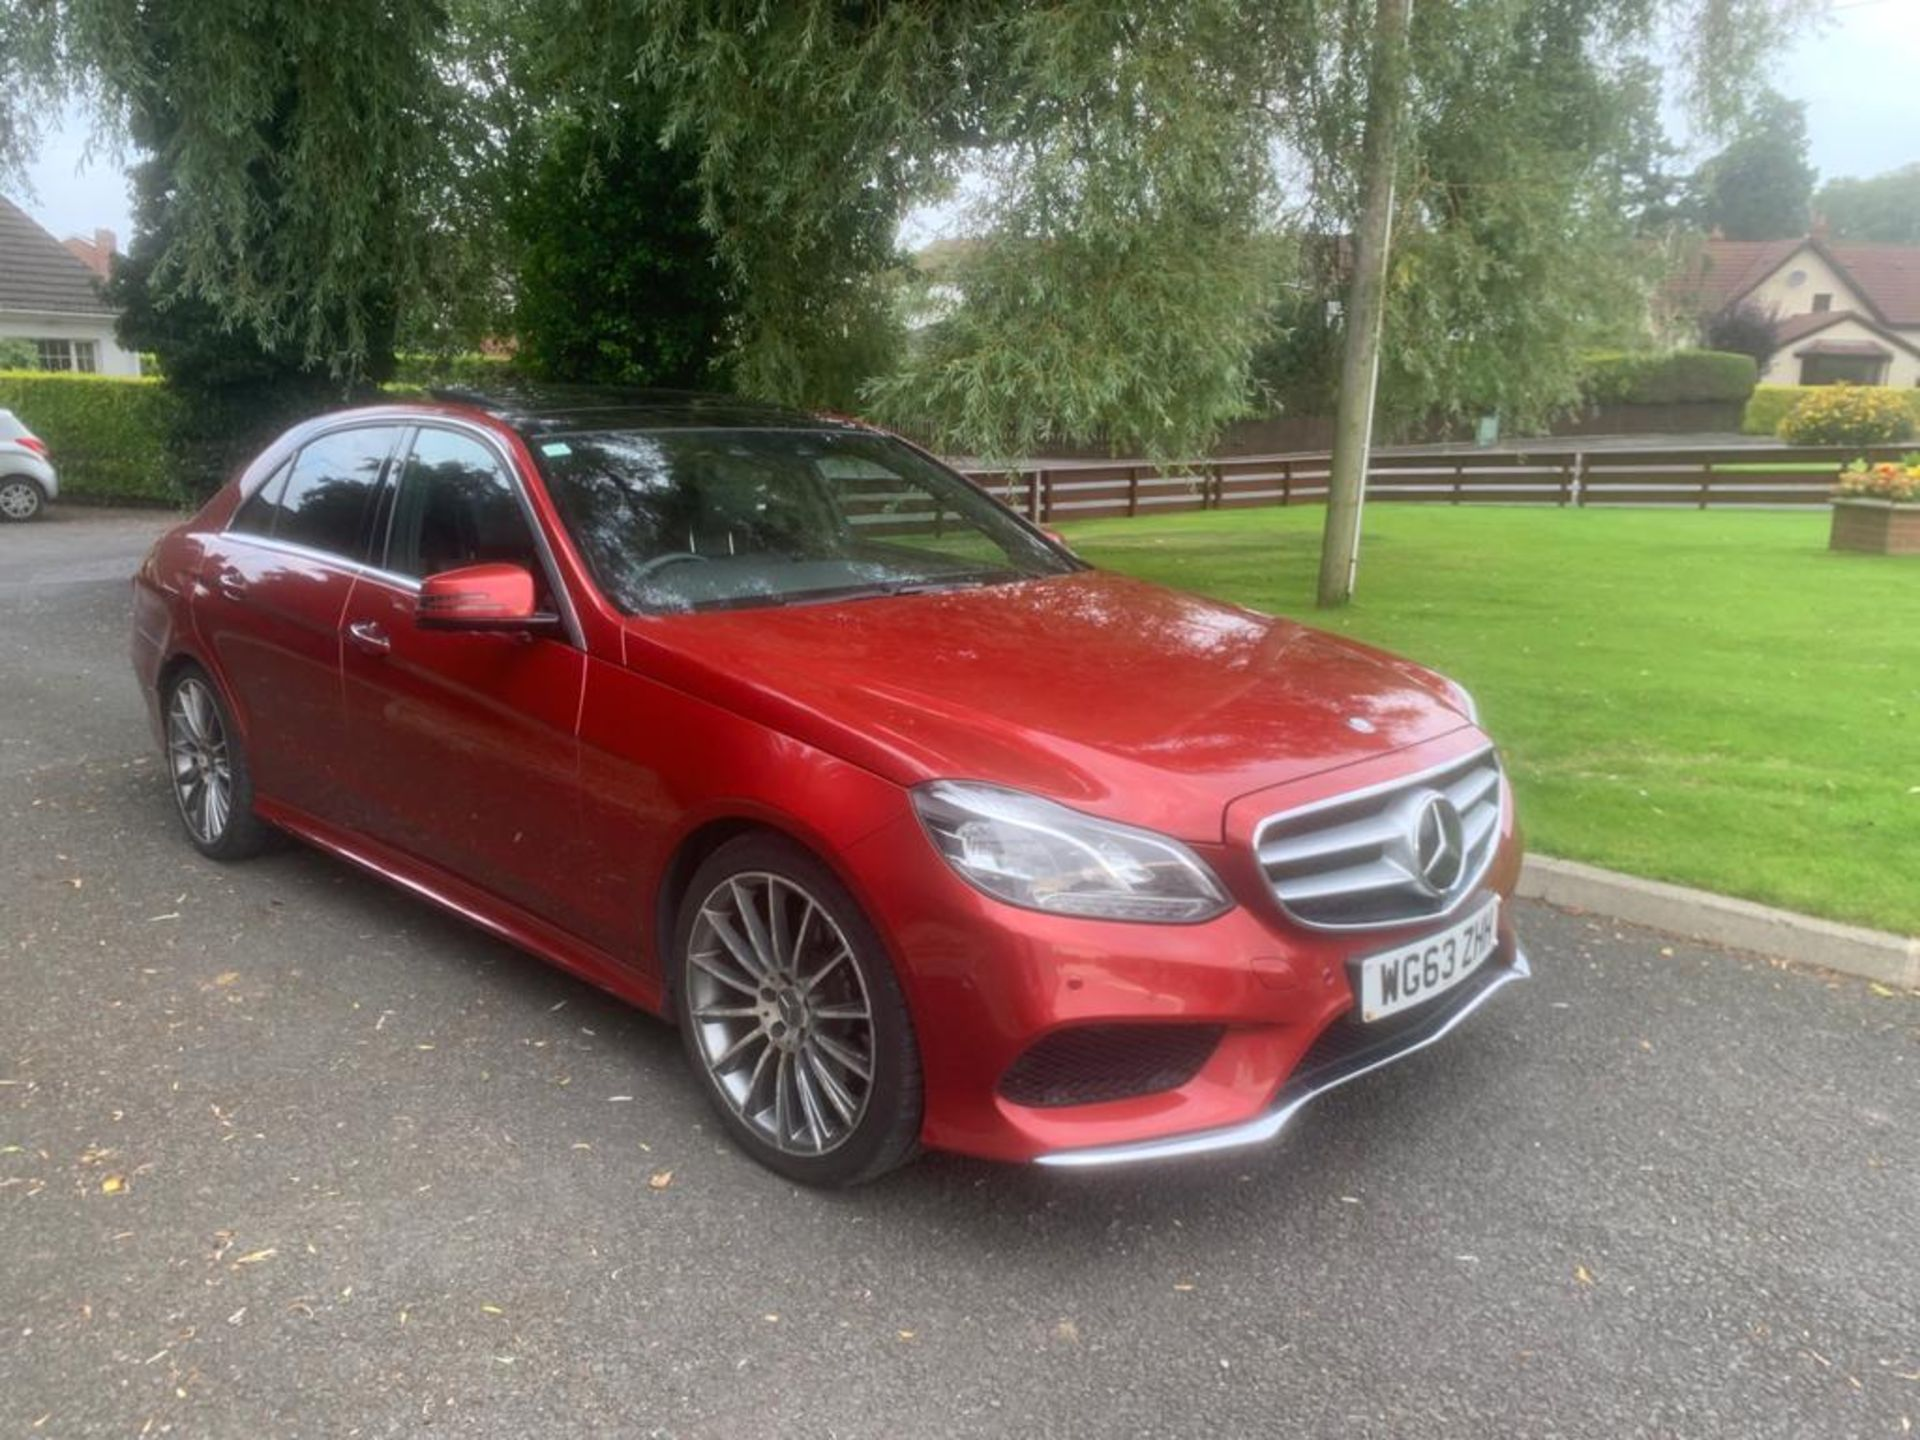 2014/63 REG MERCEDES-BENZ E300 AMG SPORT BLUETEC HYBRID 2.2 ELECTRIC DIESEL RED 4 DOOR SALOON - Image 2 of 15